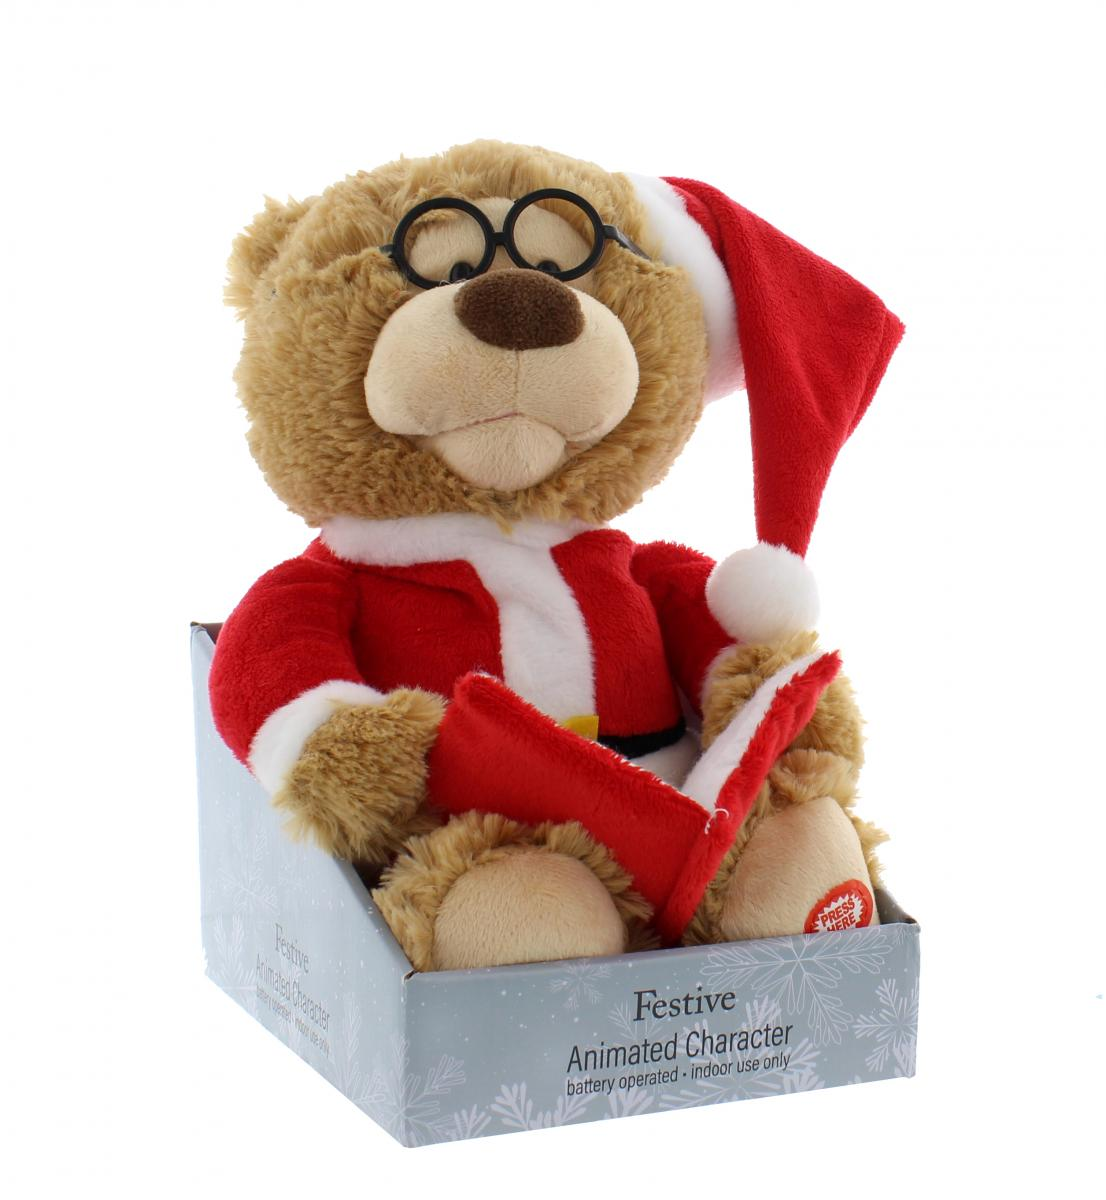 27cm Story Telling Bear – Now Only £15.00